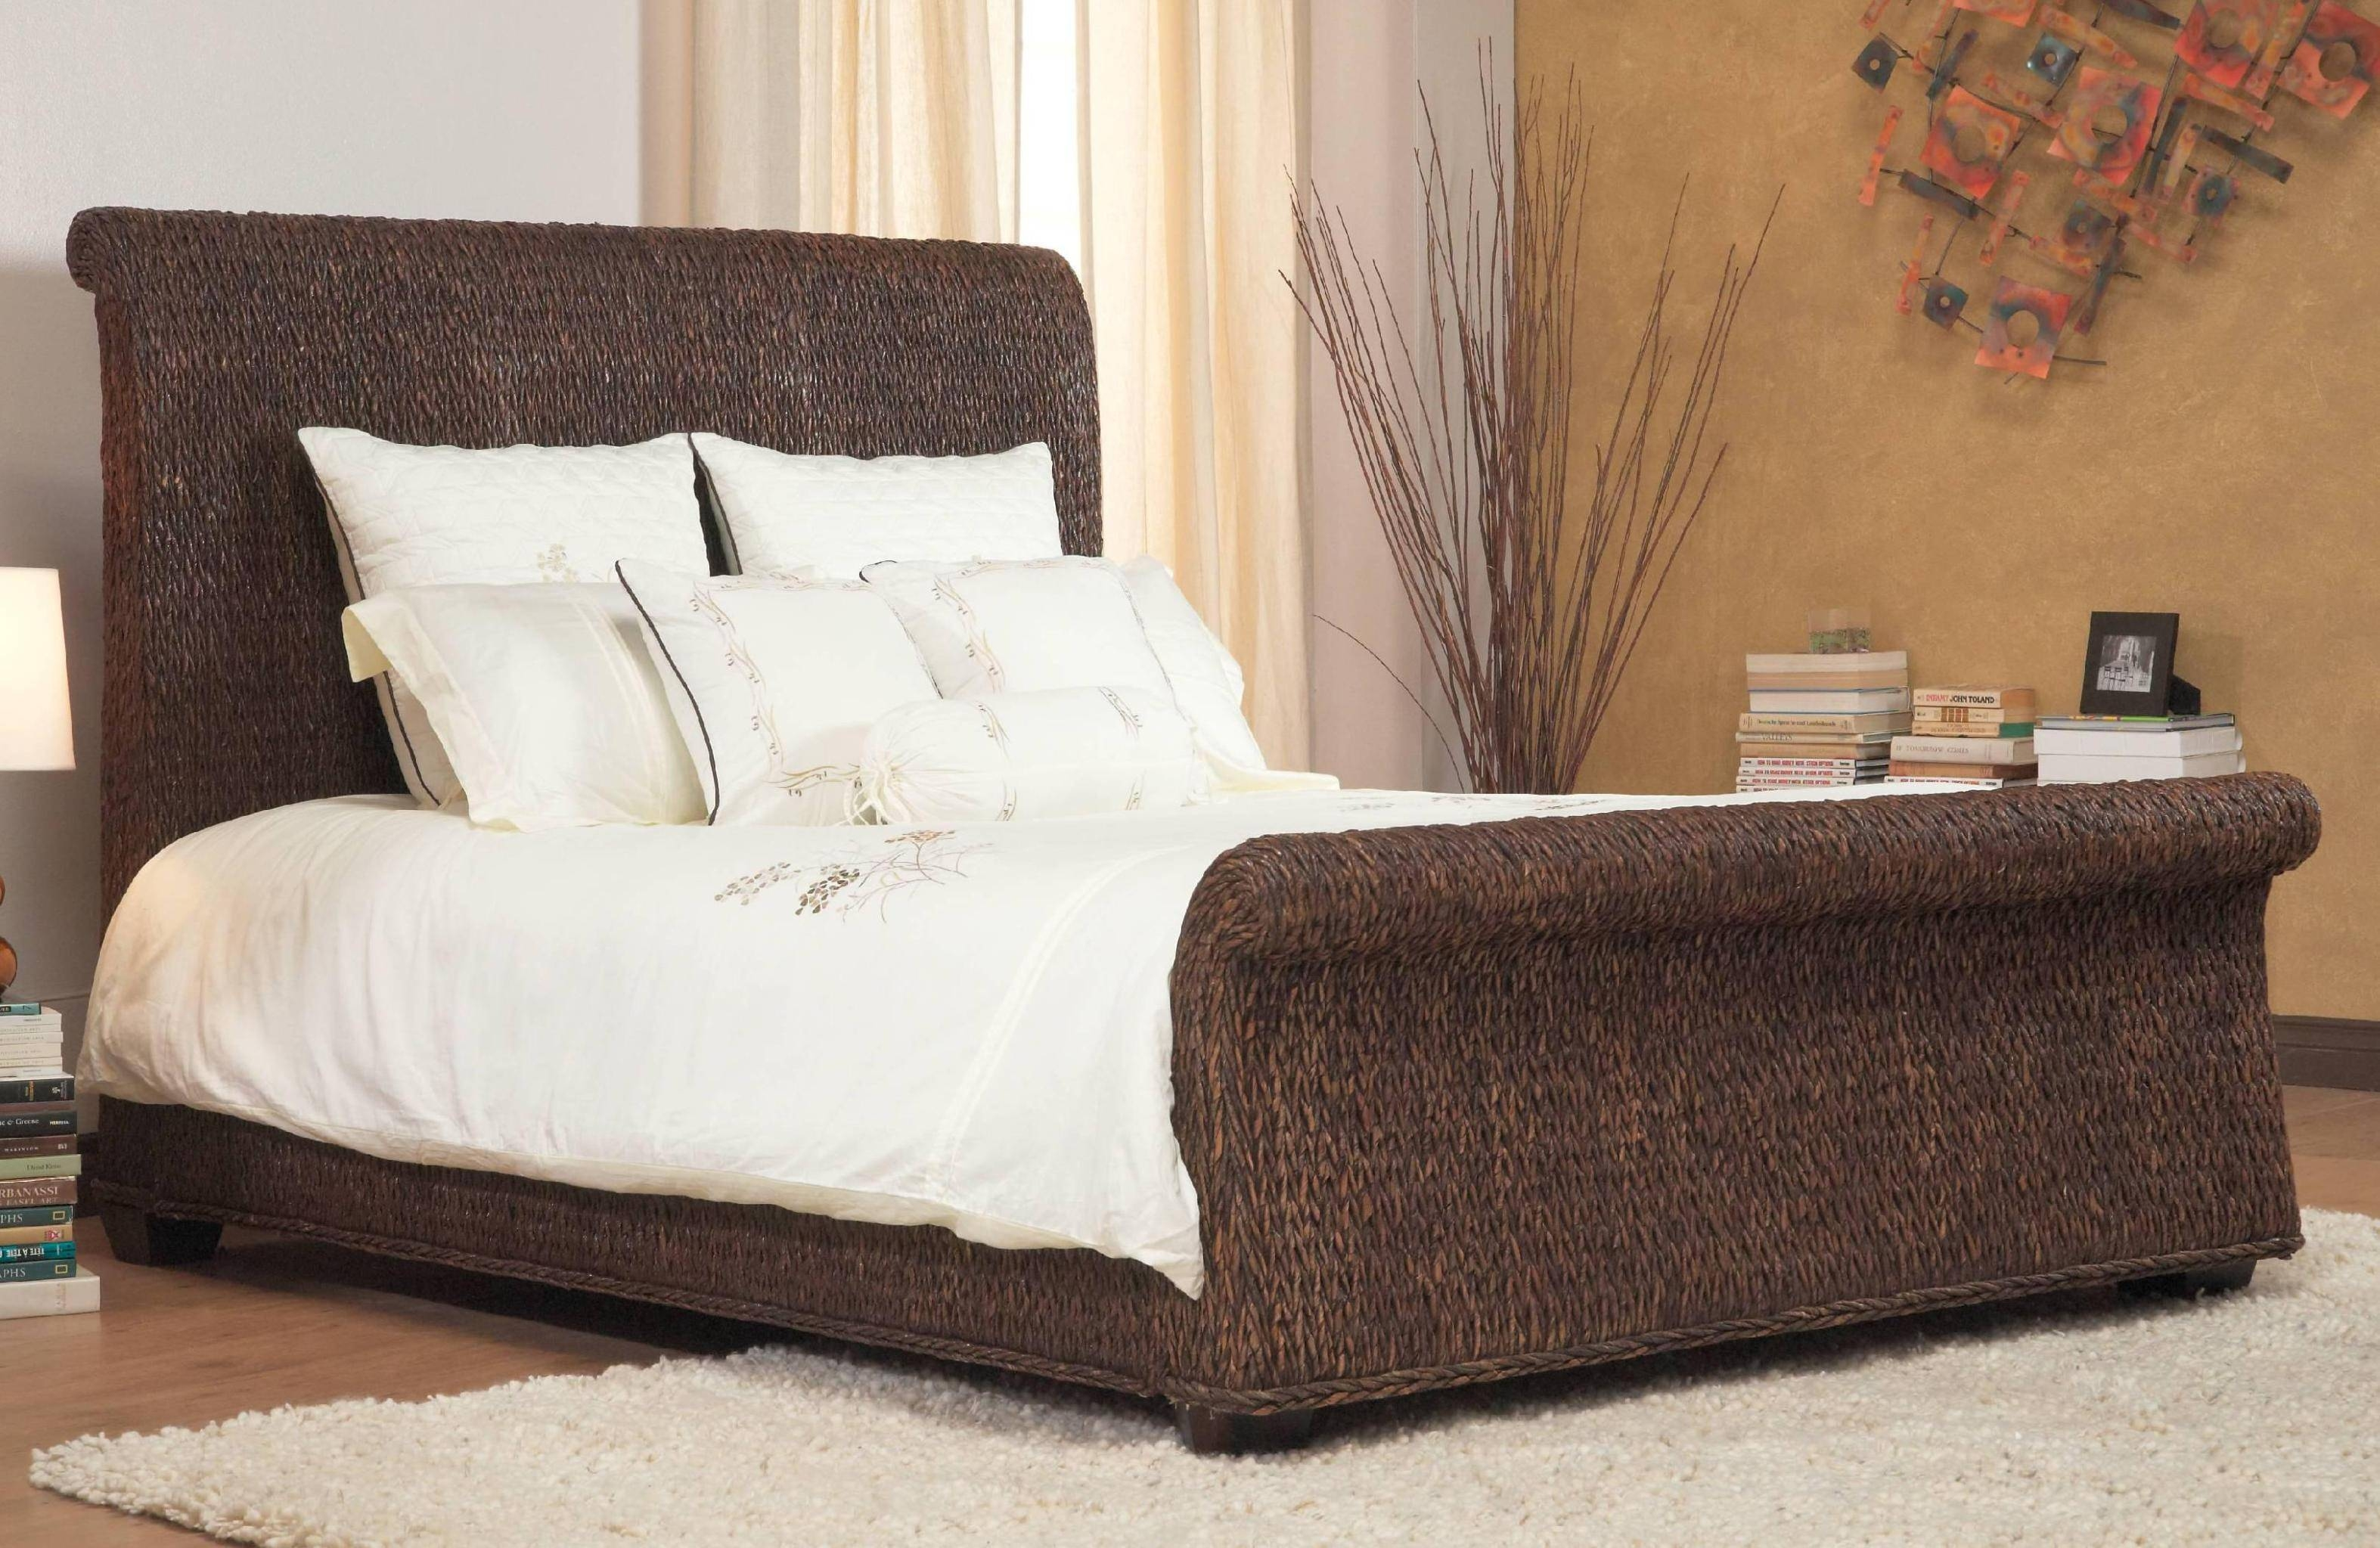 Bedroom: Rattan Bedroom Furniture With Mocha Rug And White within White Cane Sofas (Image 5 of 30)